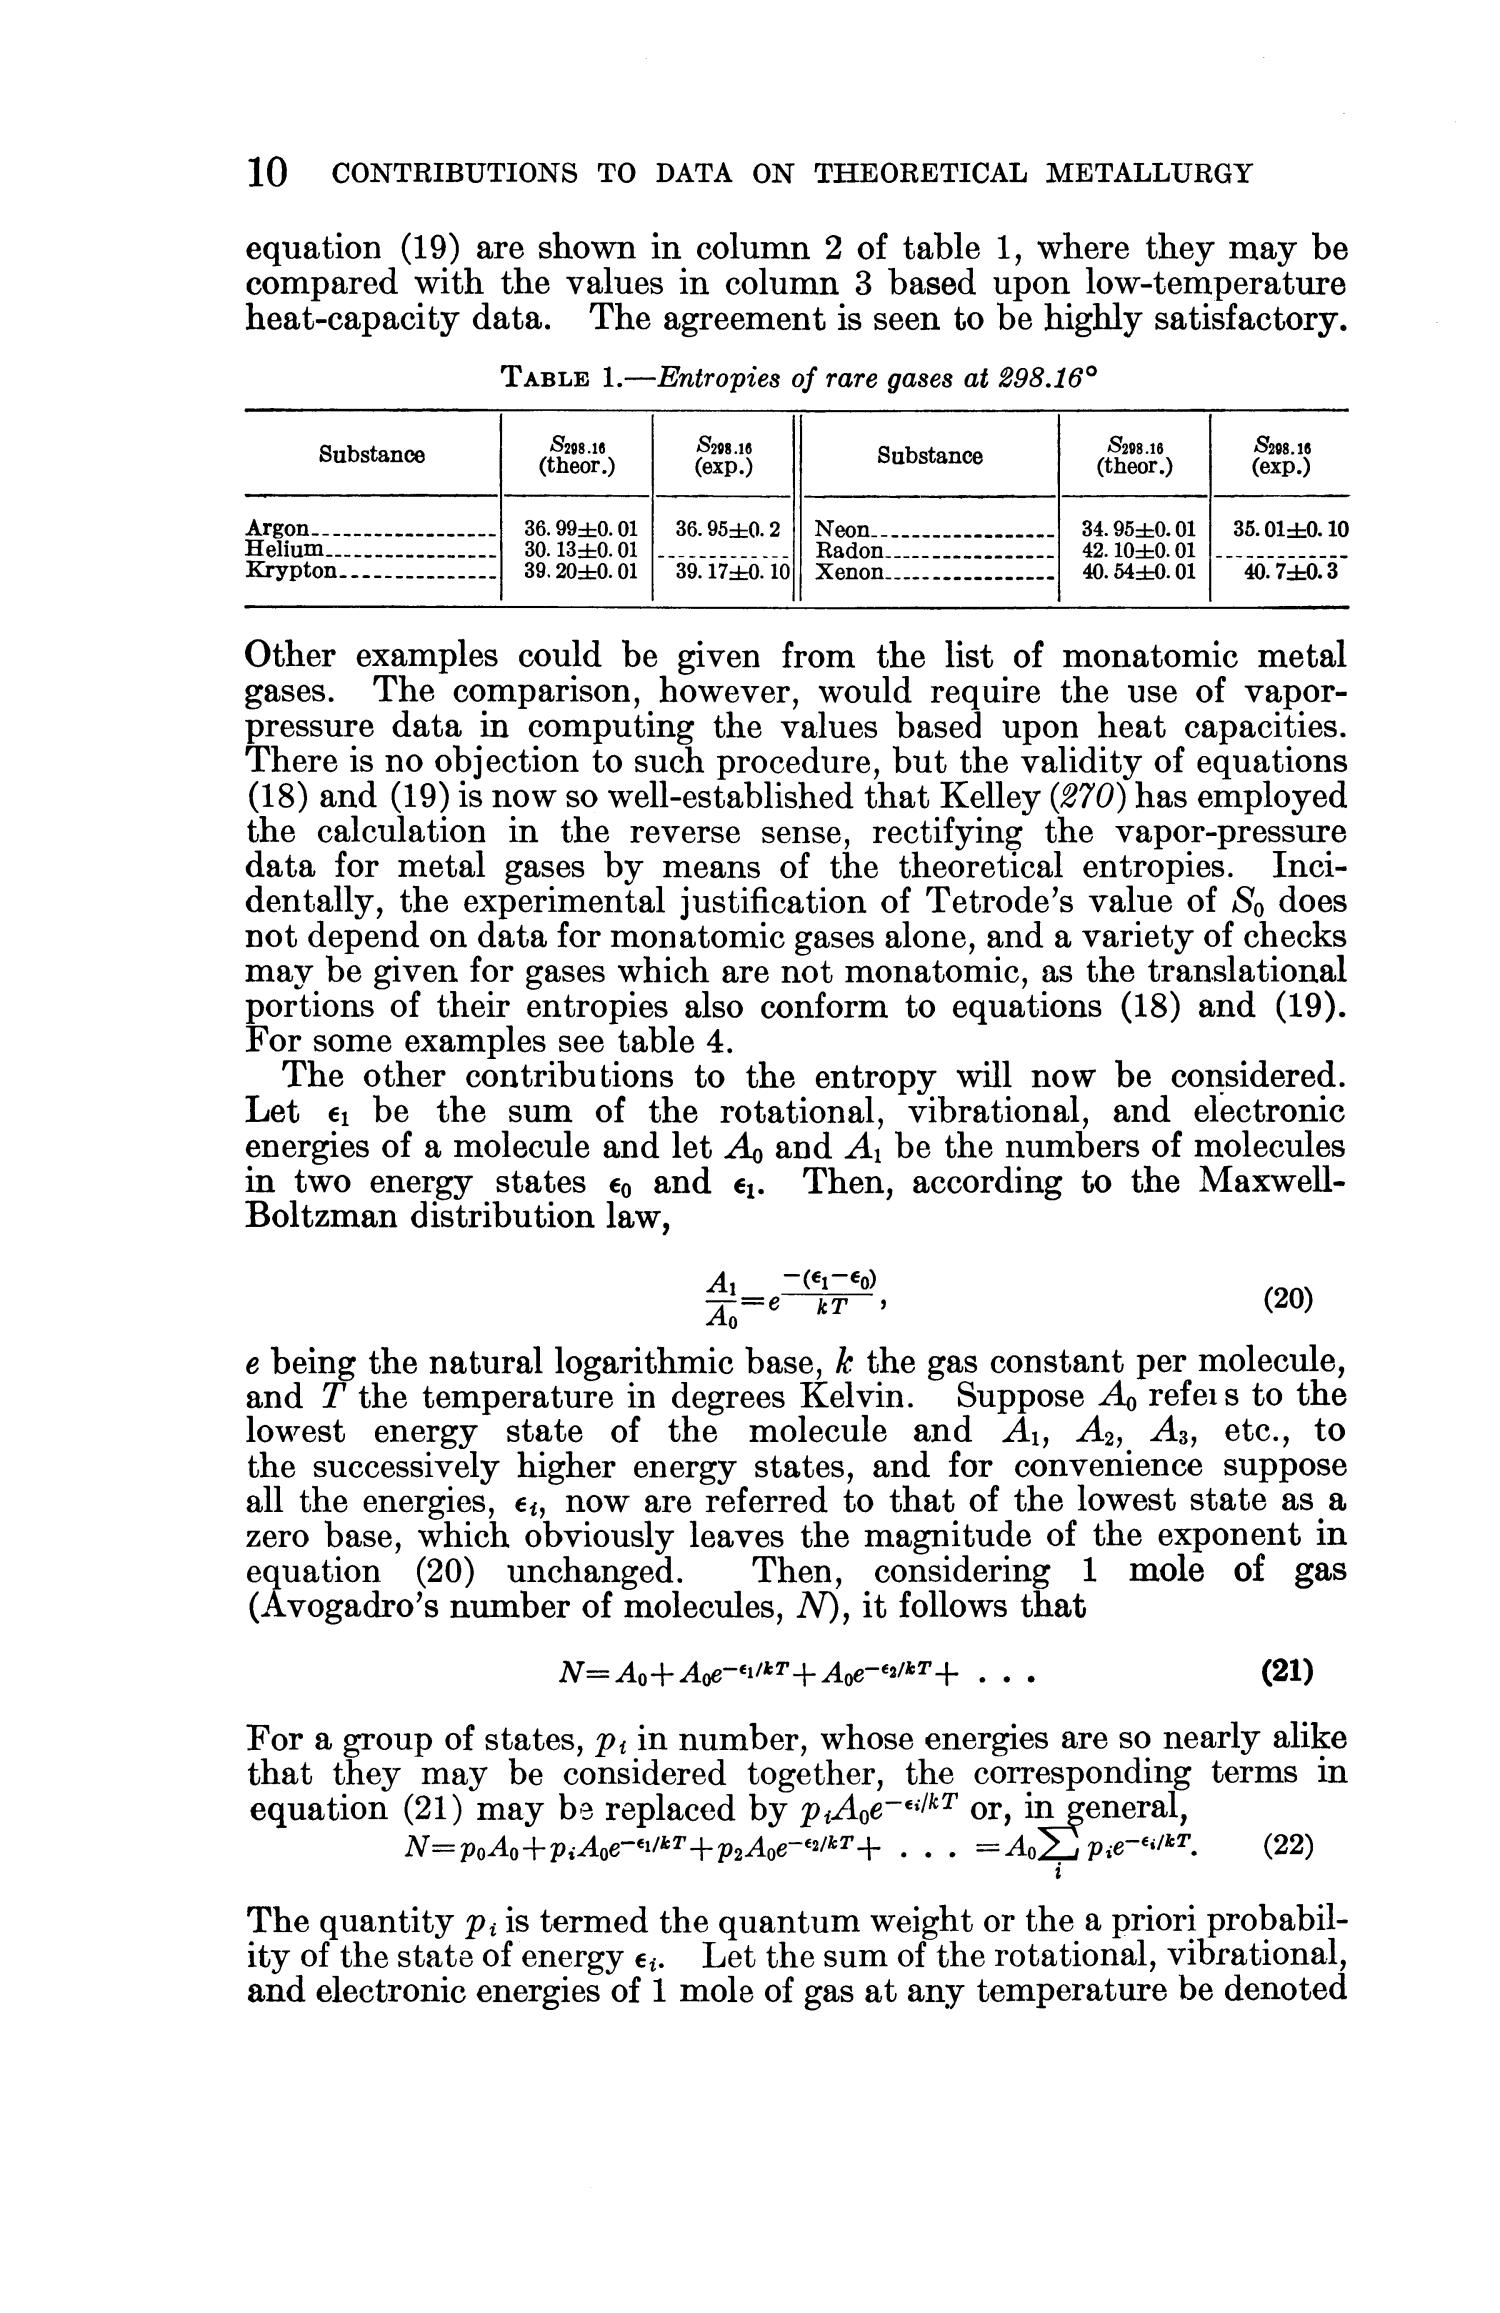 Contributions to the Data on Theoretical Metallurgy: [Part] 11. Entropies of Inorganic Substances: Revision (1948) of Data and Methods of Calculation                                                                                                      10